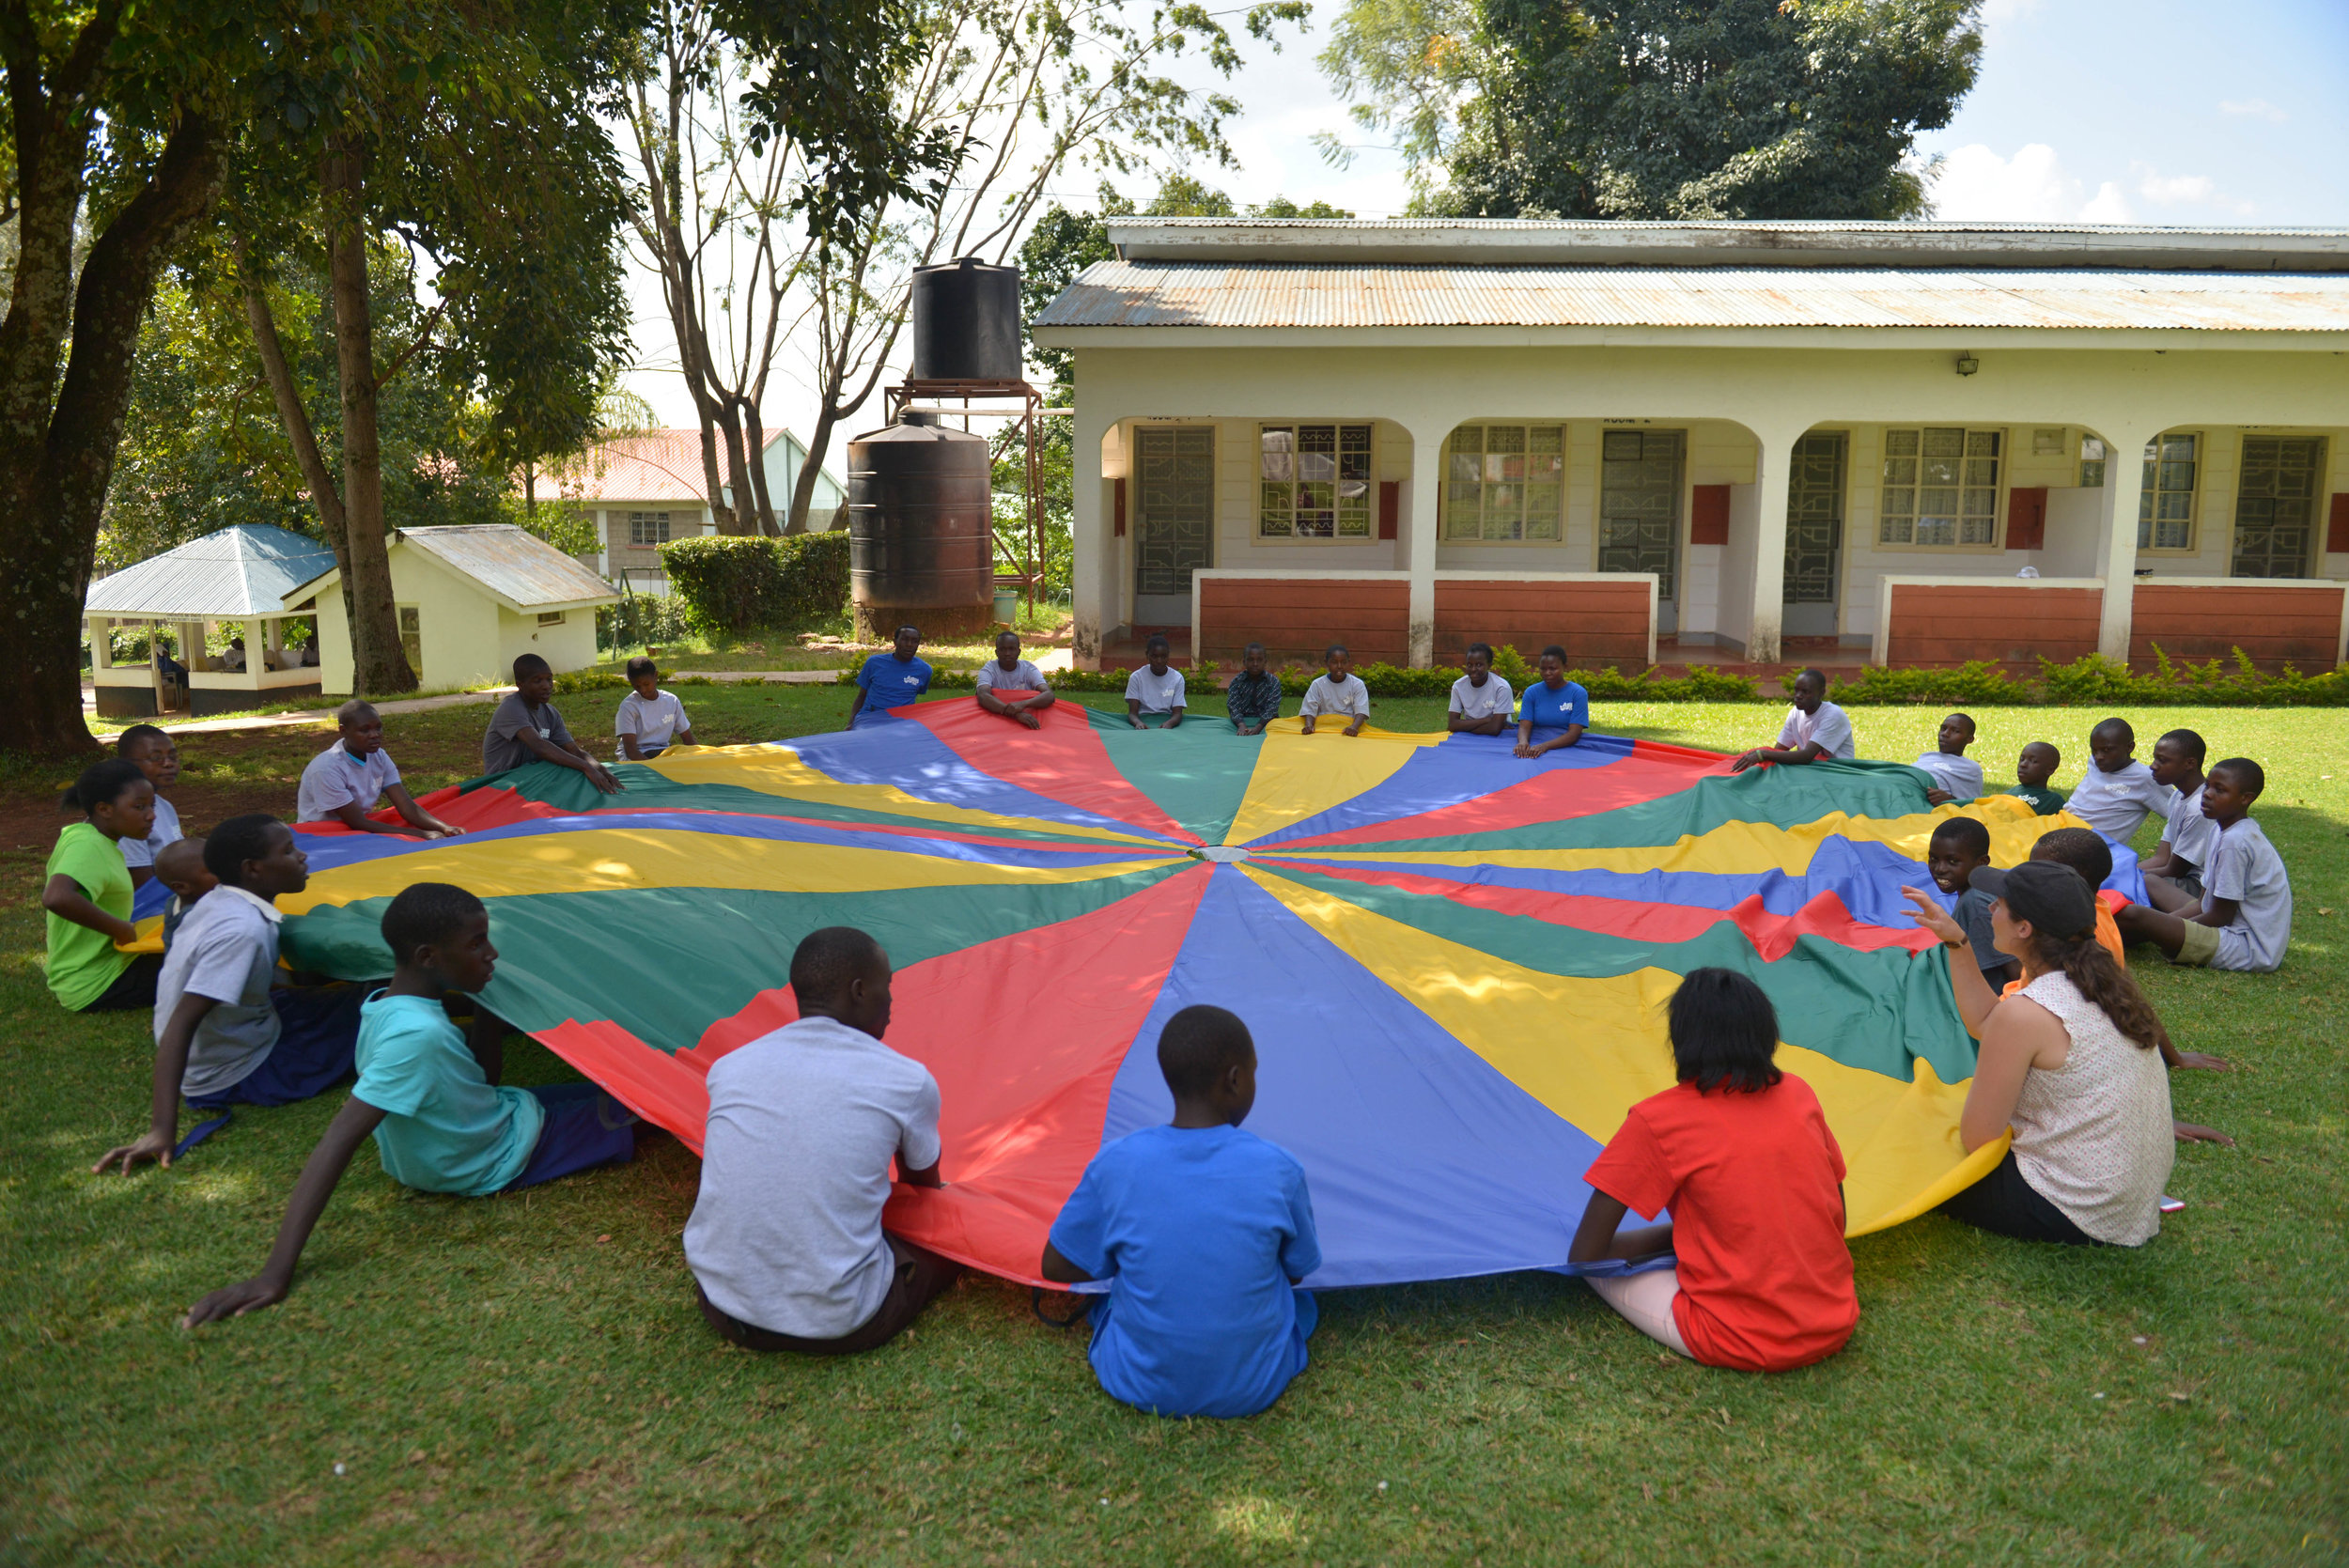 A photo of the students playing with a parachute at field day